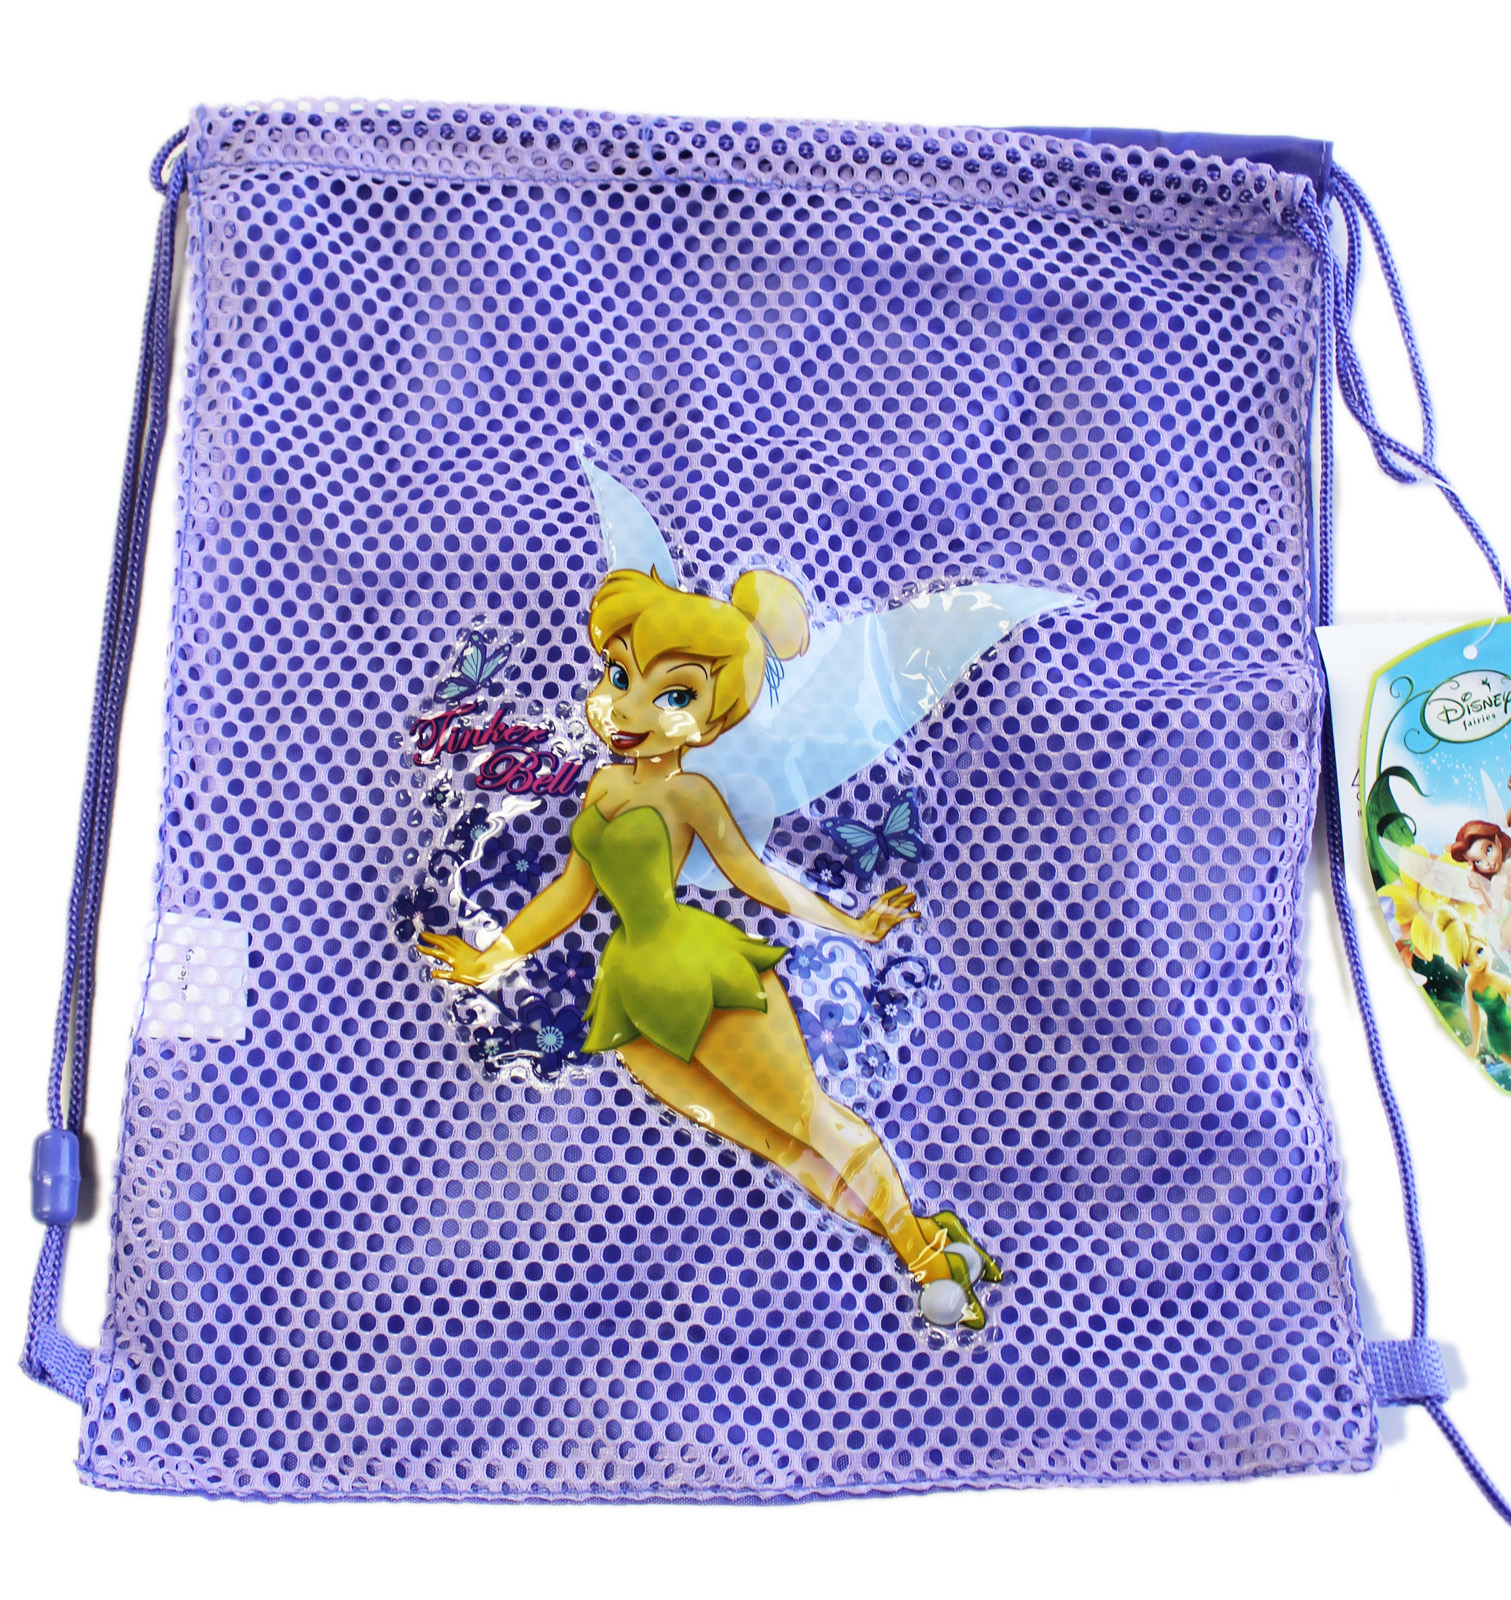 Disney Fairies Tinker Bell Half Mesh Lavender Colored Drawstring Backpack